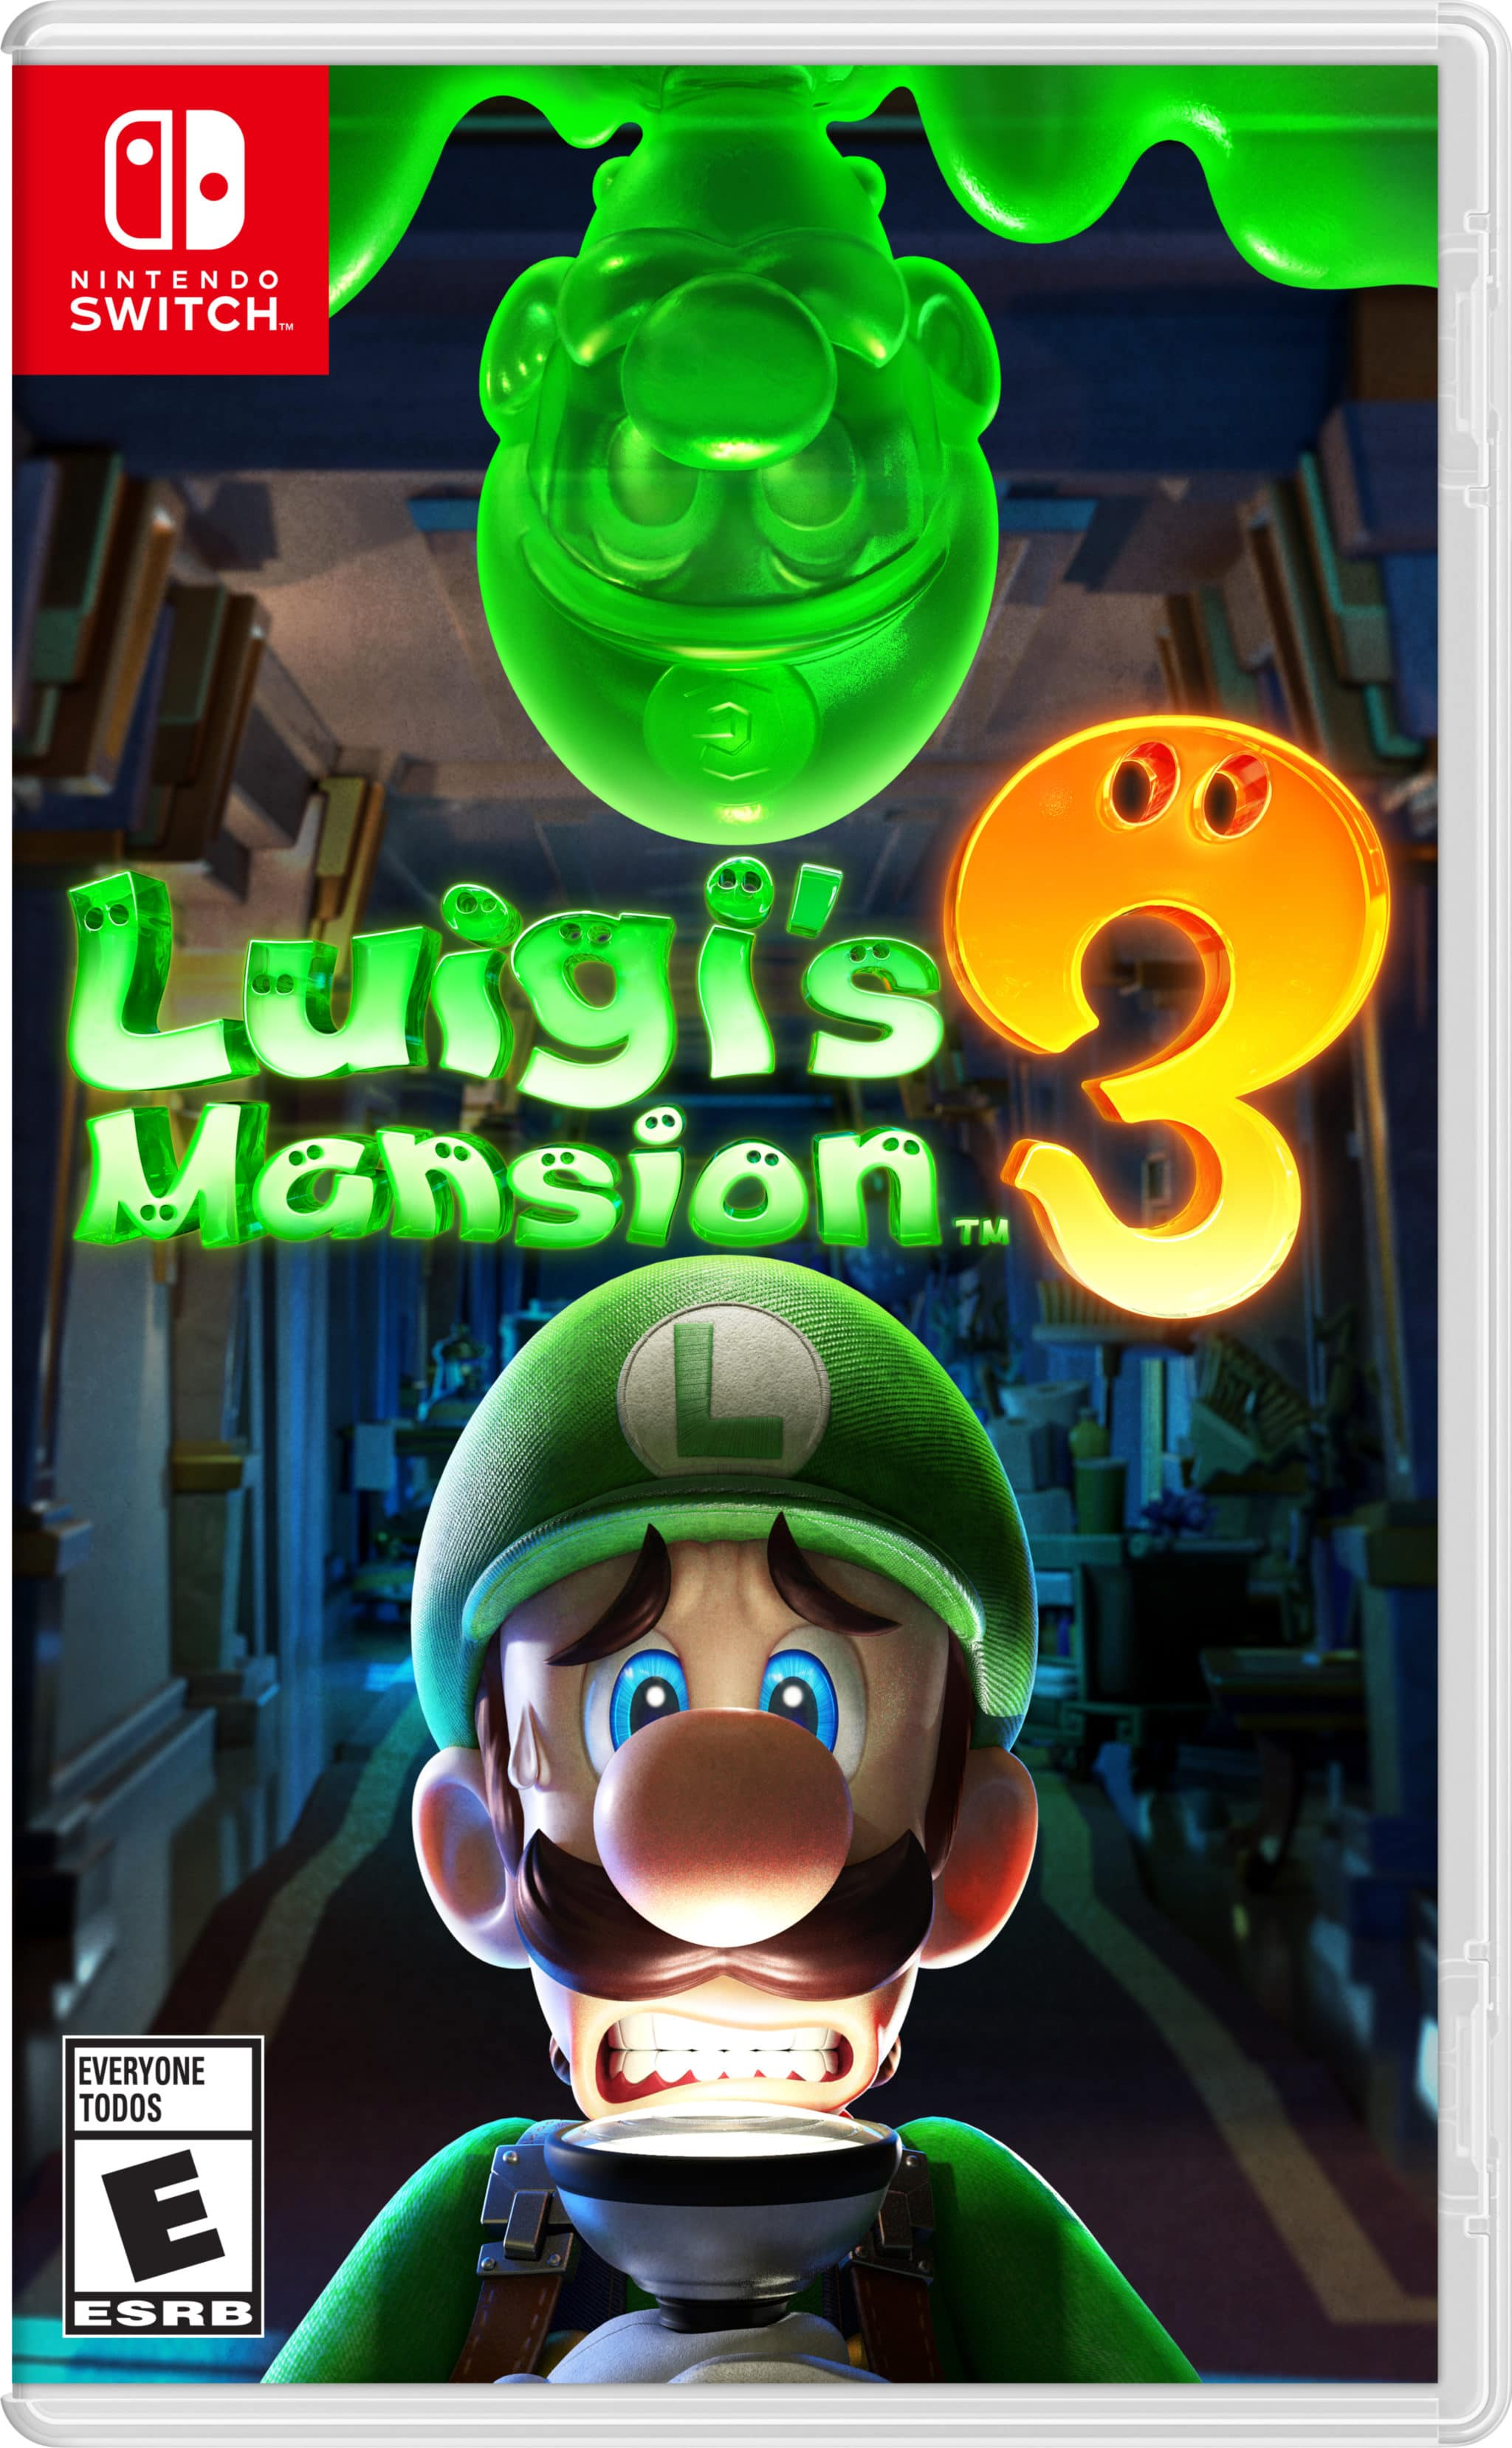 History of Luigi's Mansion 3 and Game Play